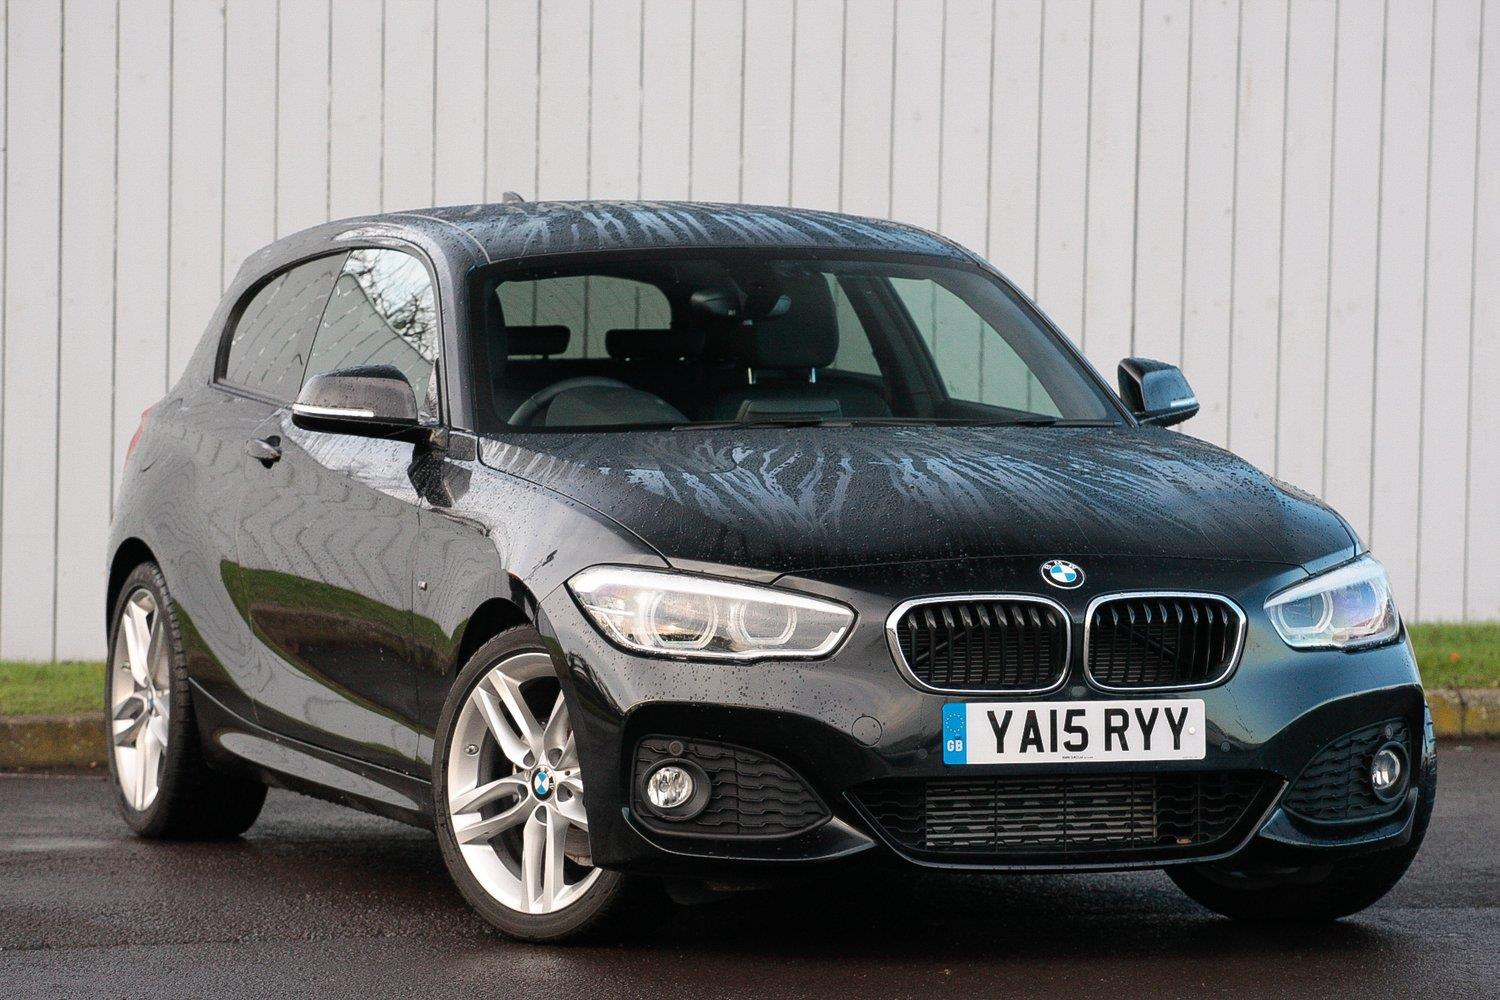 BMW 1 Series 3-door Sports Hatch YA15RYY - Image 3